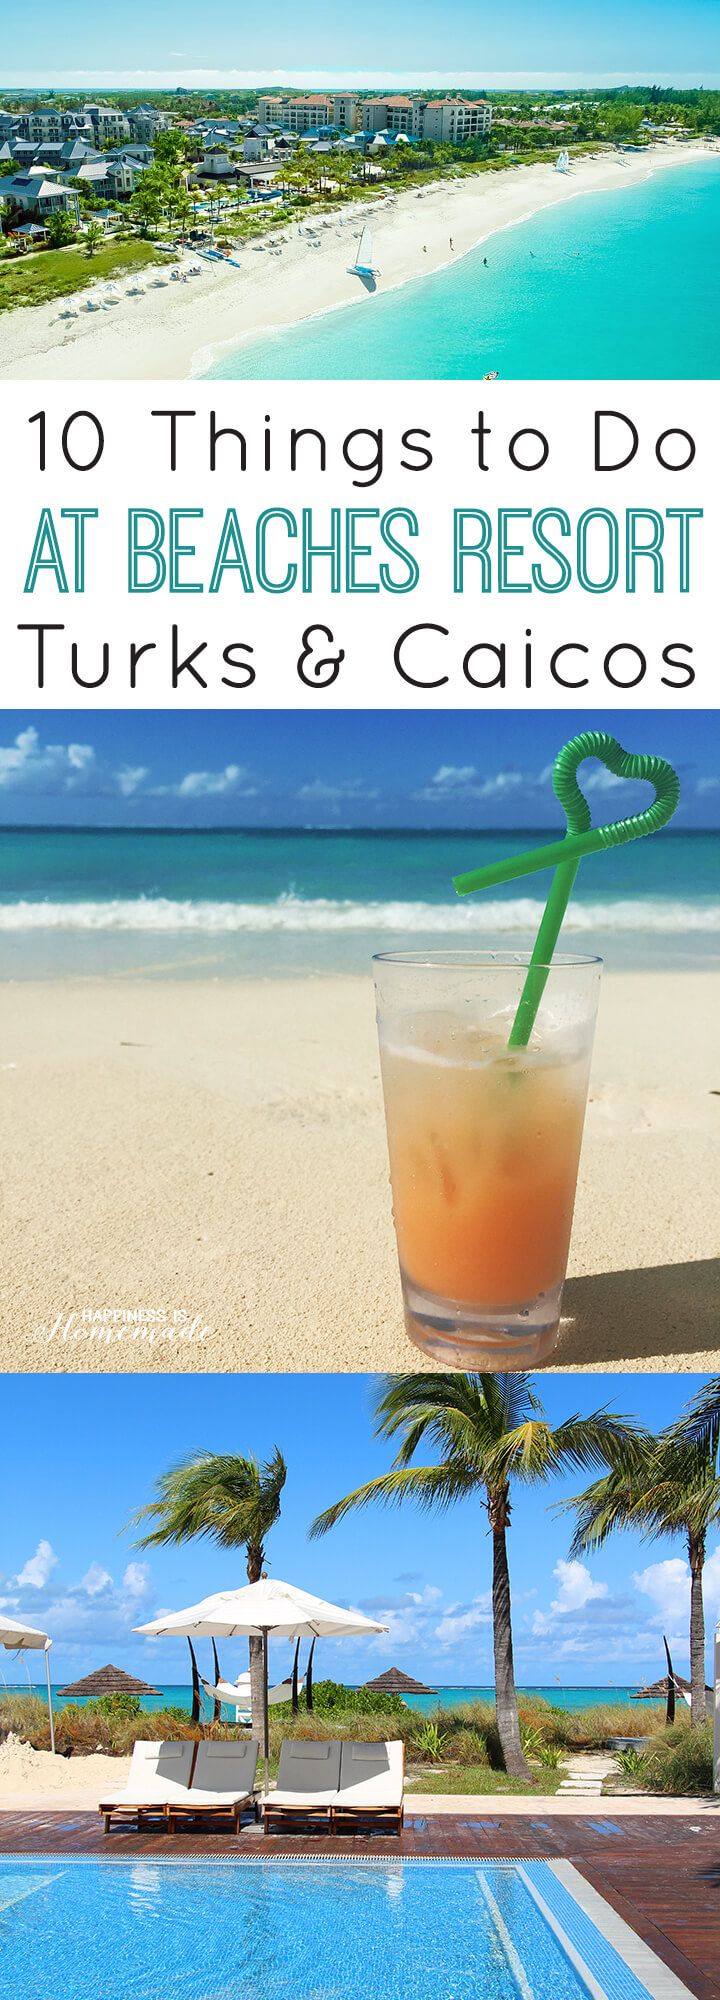 Beaches Resort And Spa At Turks And Caicos Is The Perfect